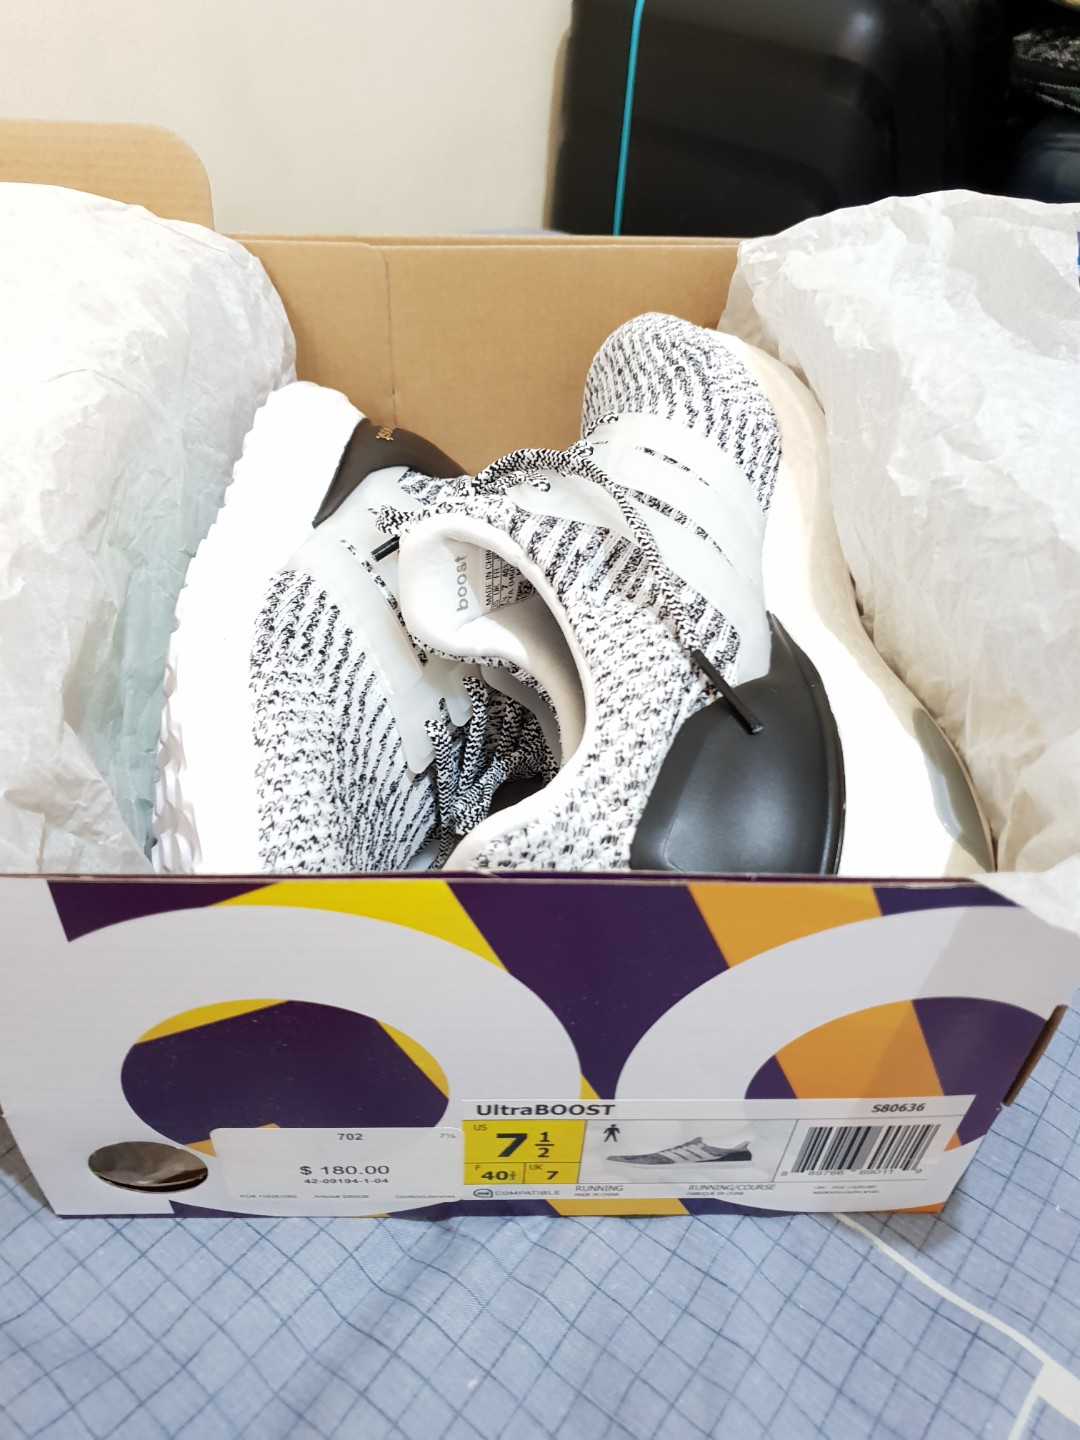 be876e1e6736b Adidas Ultraboost 3.0 Oreo S80636 Size 7.5 US Mens Authentic BNDS ...